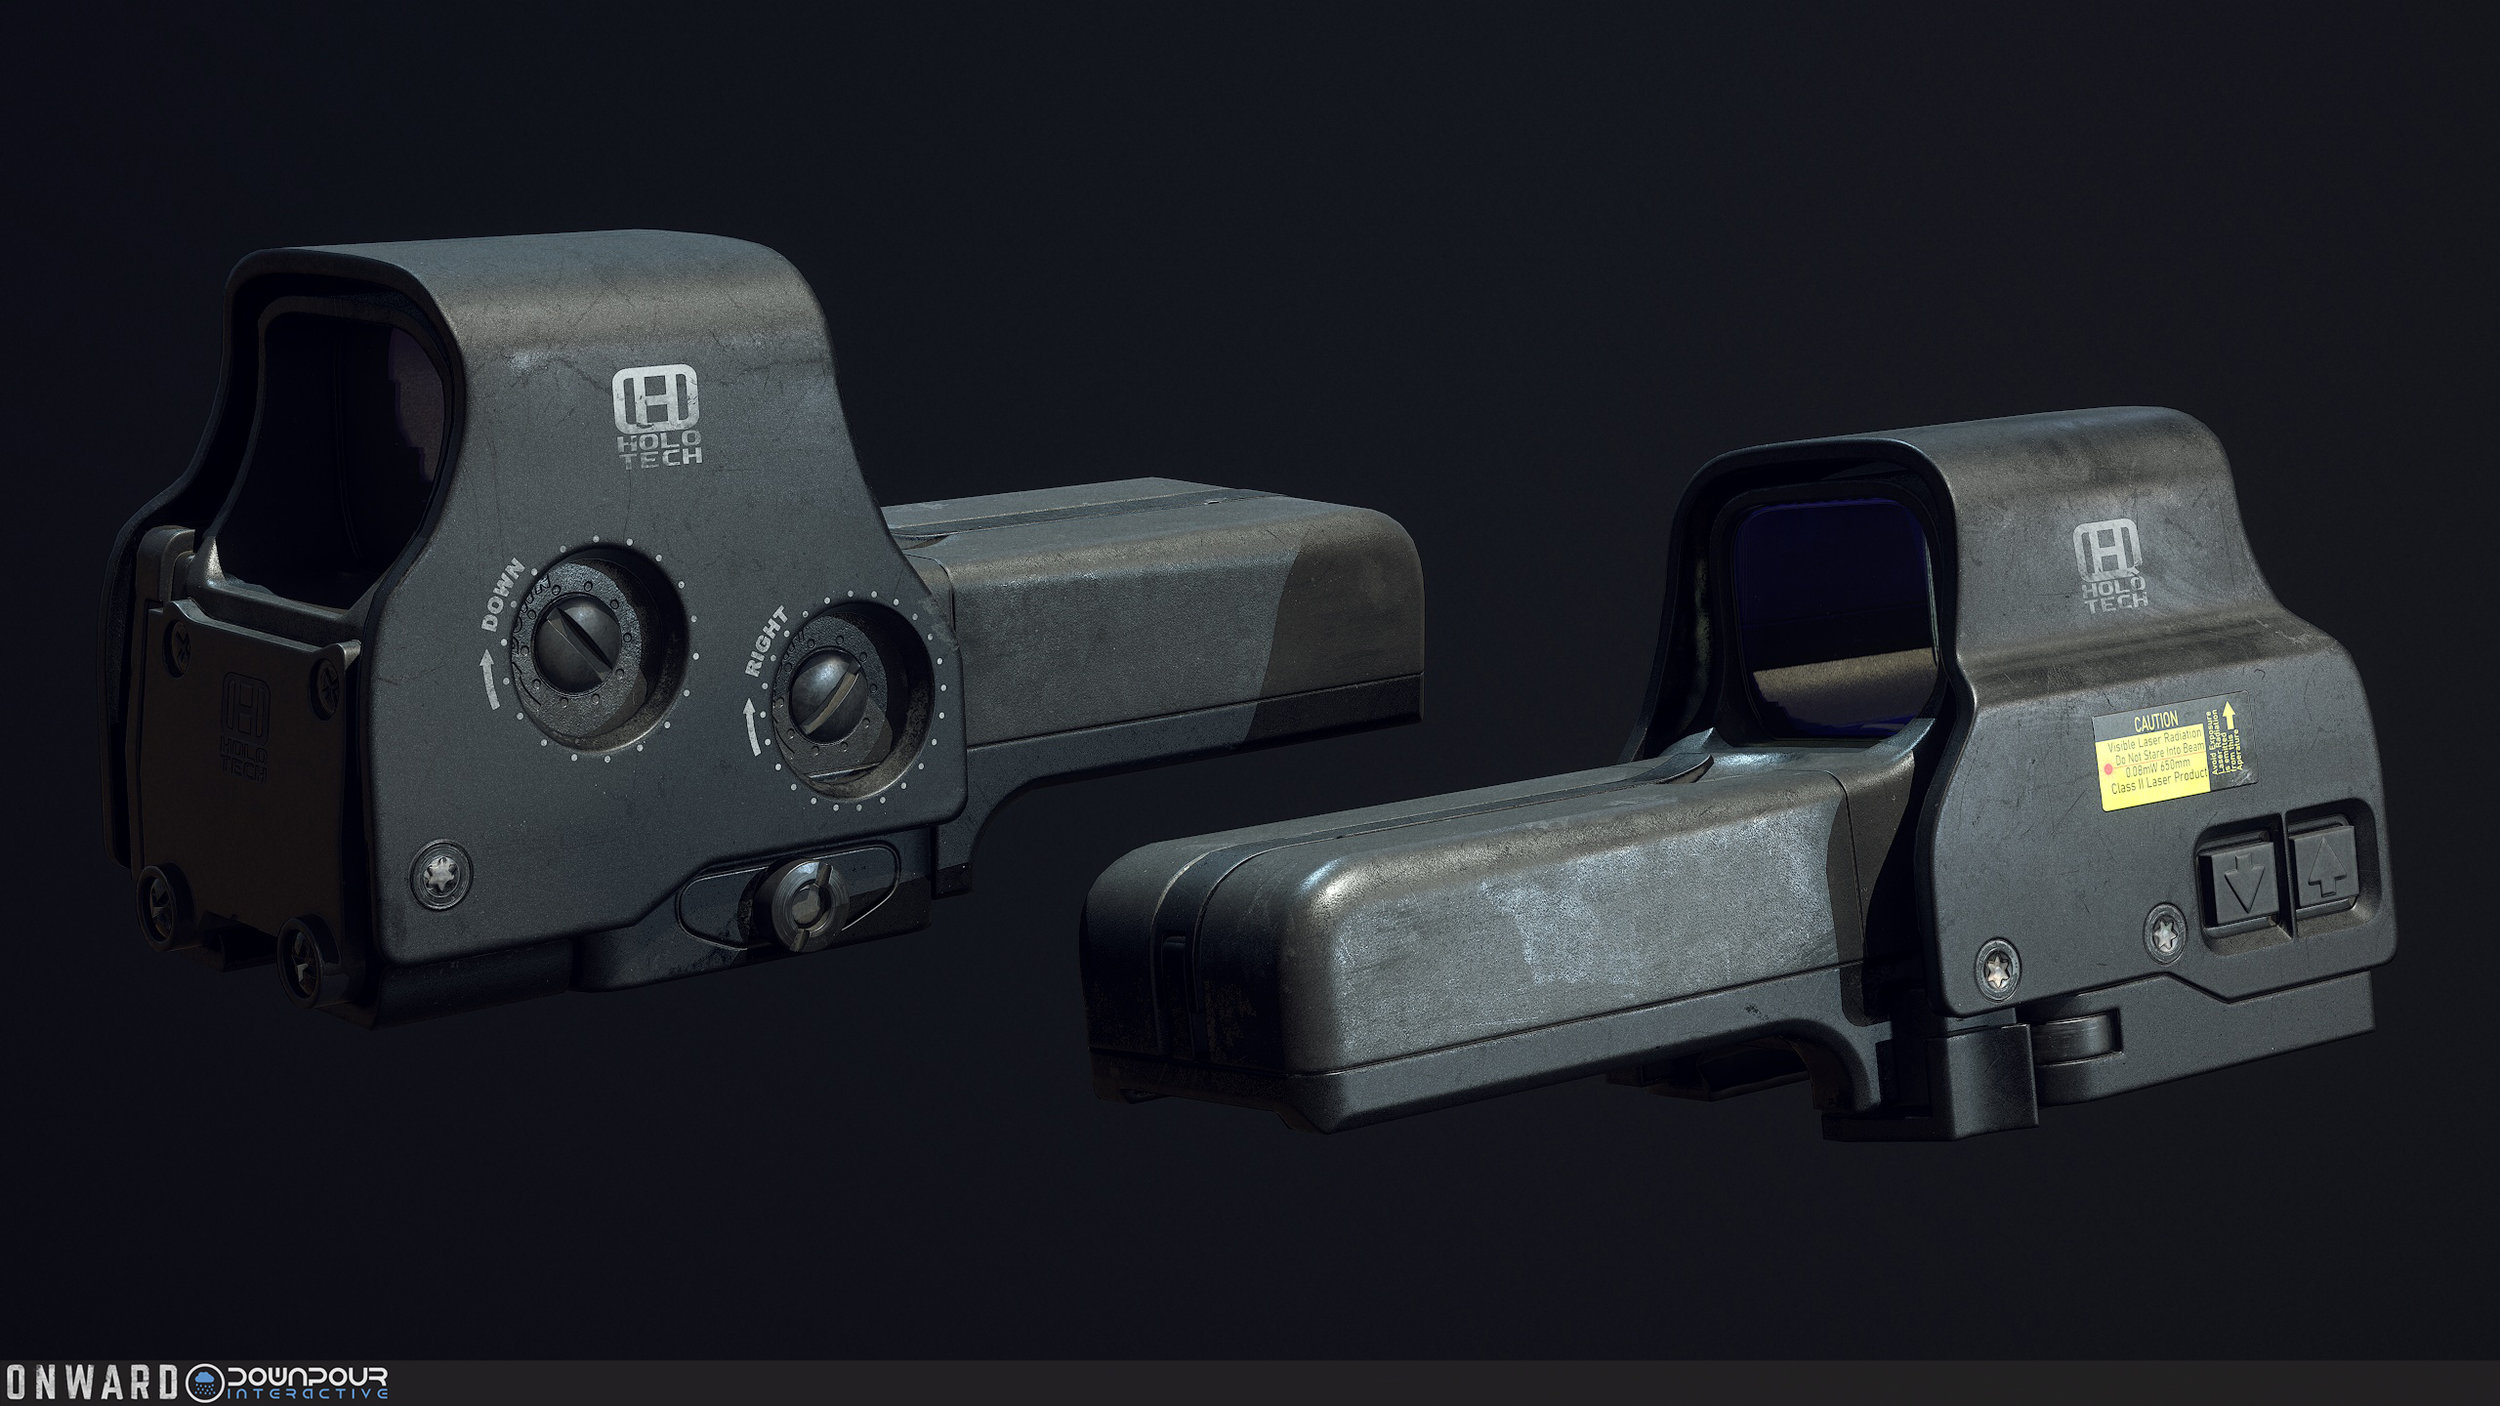 The new holographic 518 sight, replacing the current MARSOC holographic sight model.